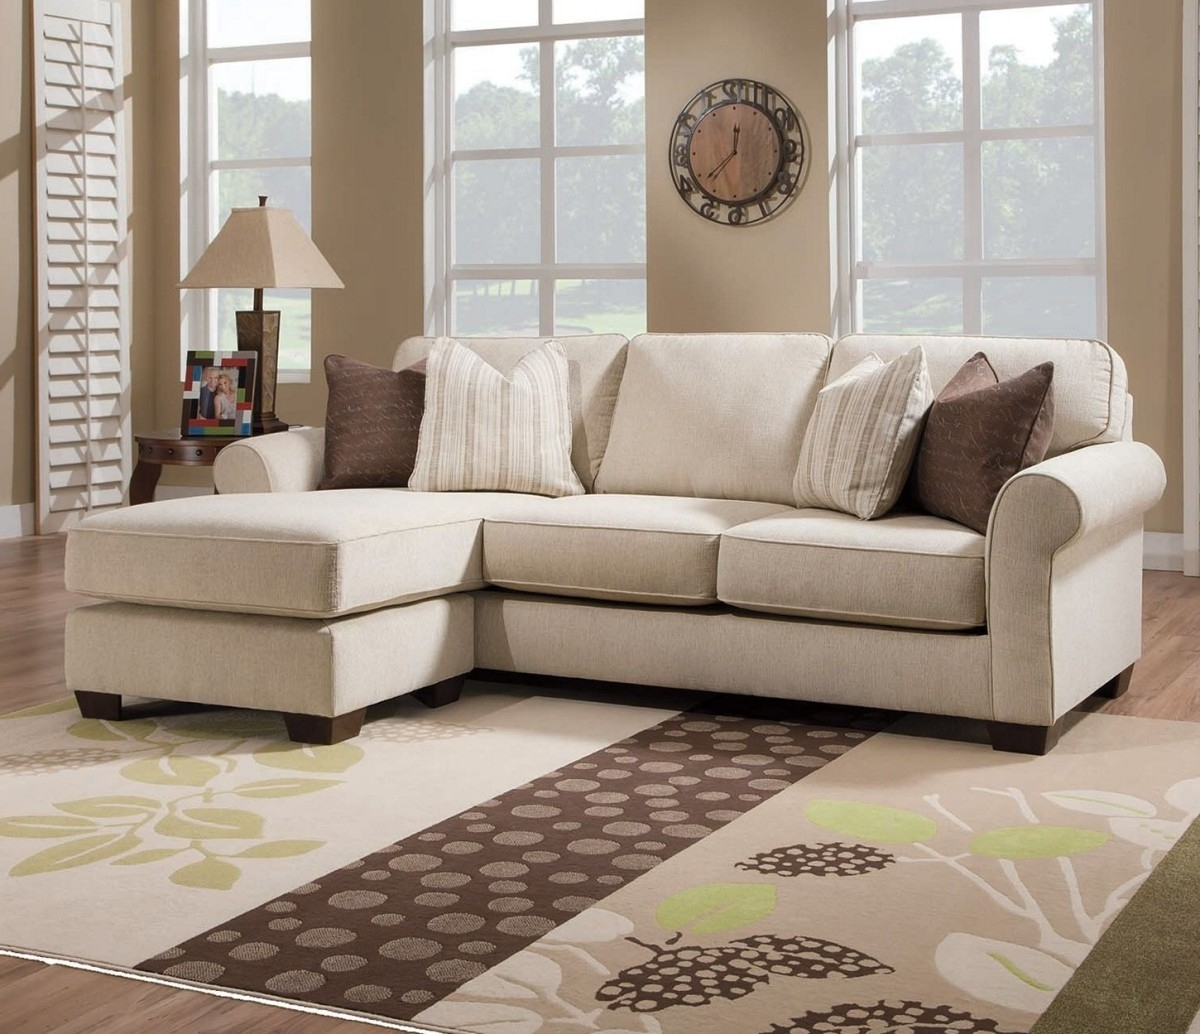 Most Popular Ethan Allen Charlotte Nc Modern Italian Leather Sofa Ethan Allen Regarding Sectional Sofas In Charlotte Nc (View 7 of 15)